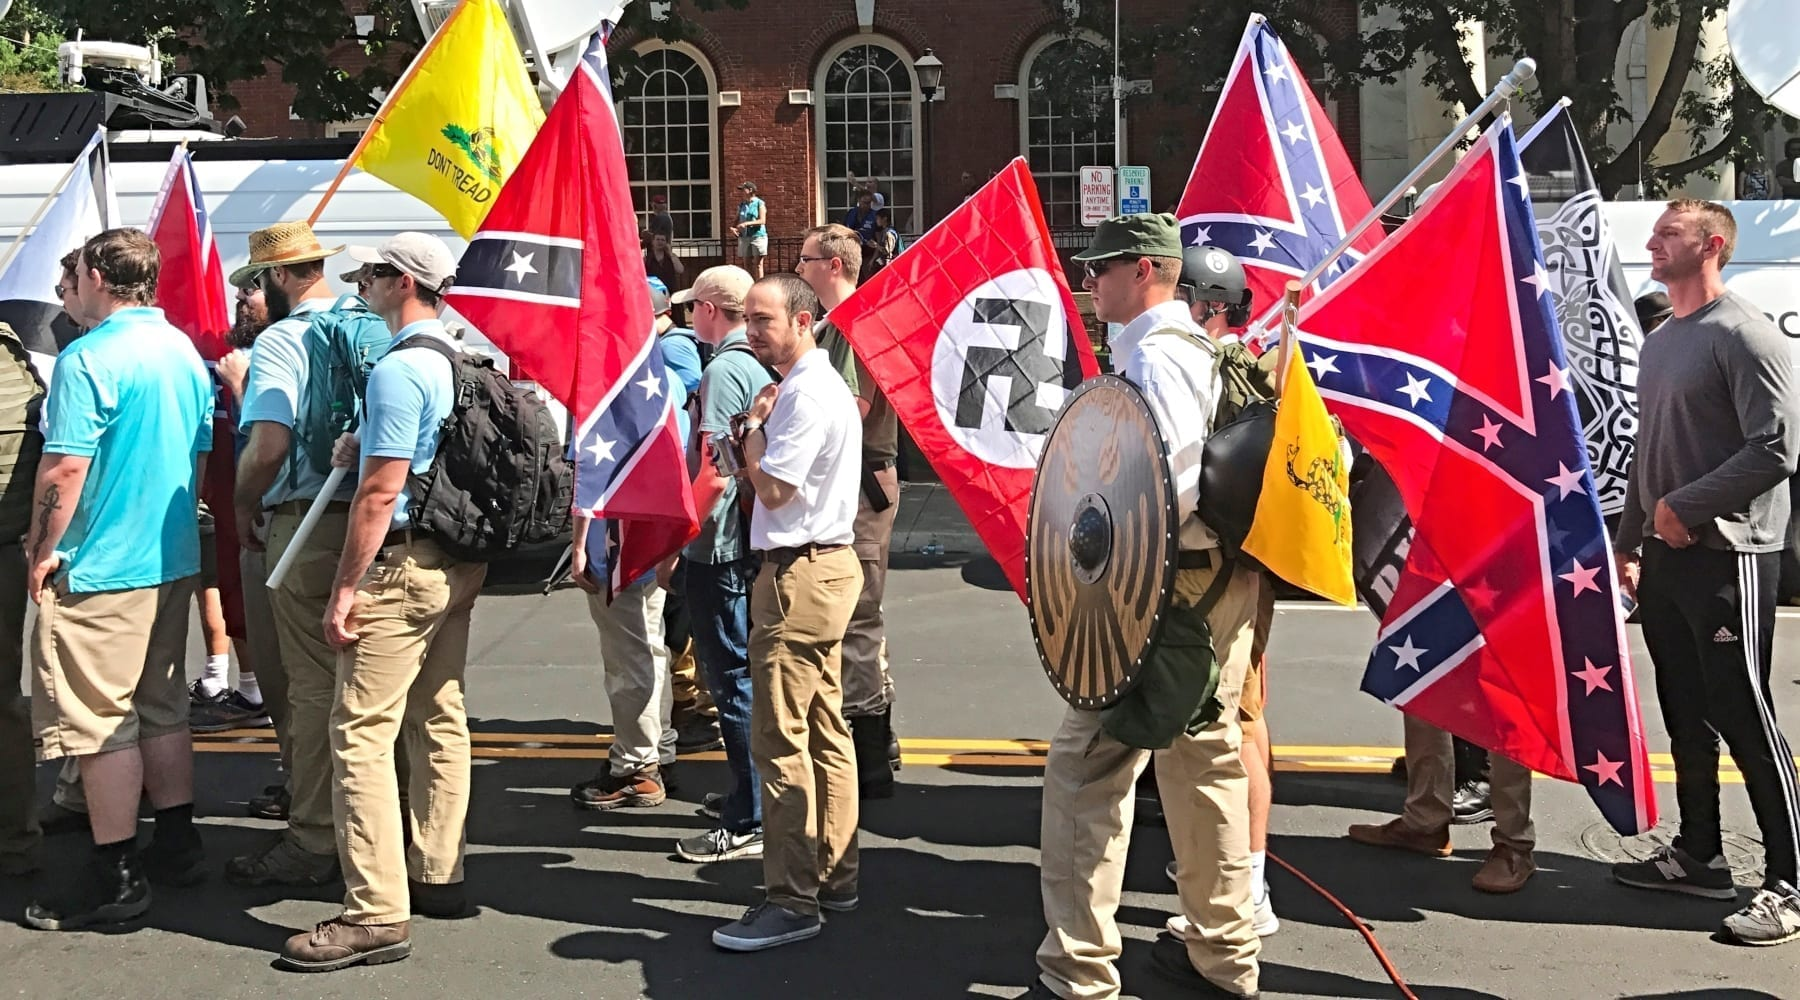 4 Ways Your Church Can Stand Against White Nationalism